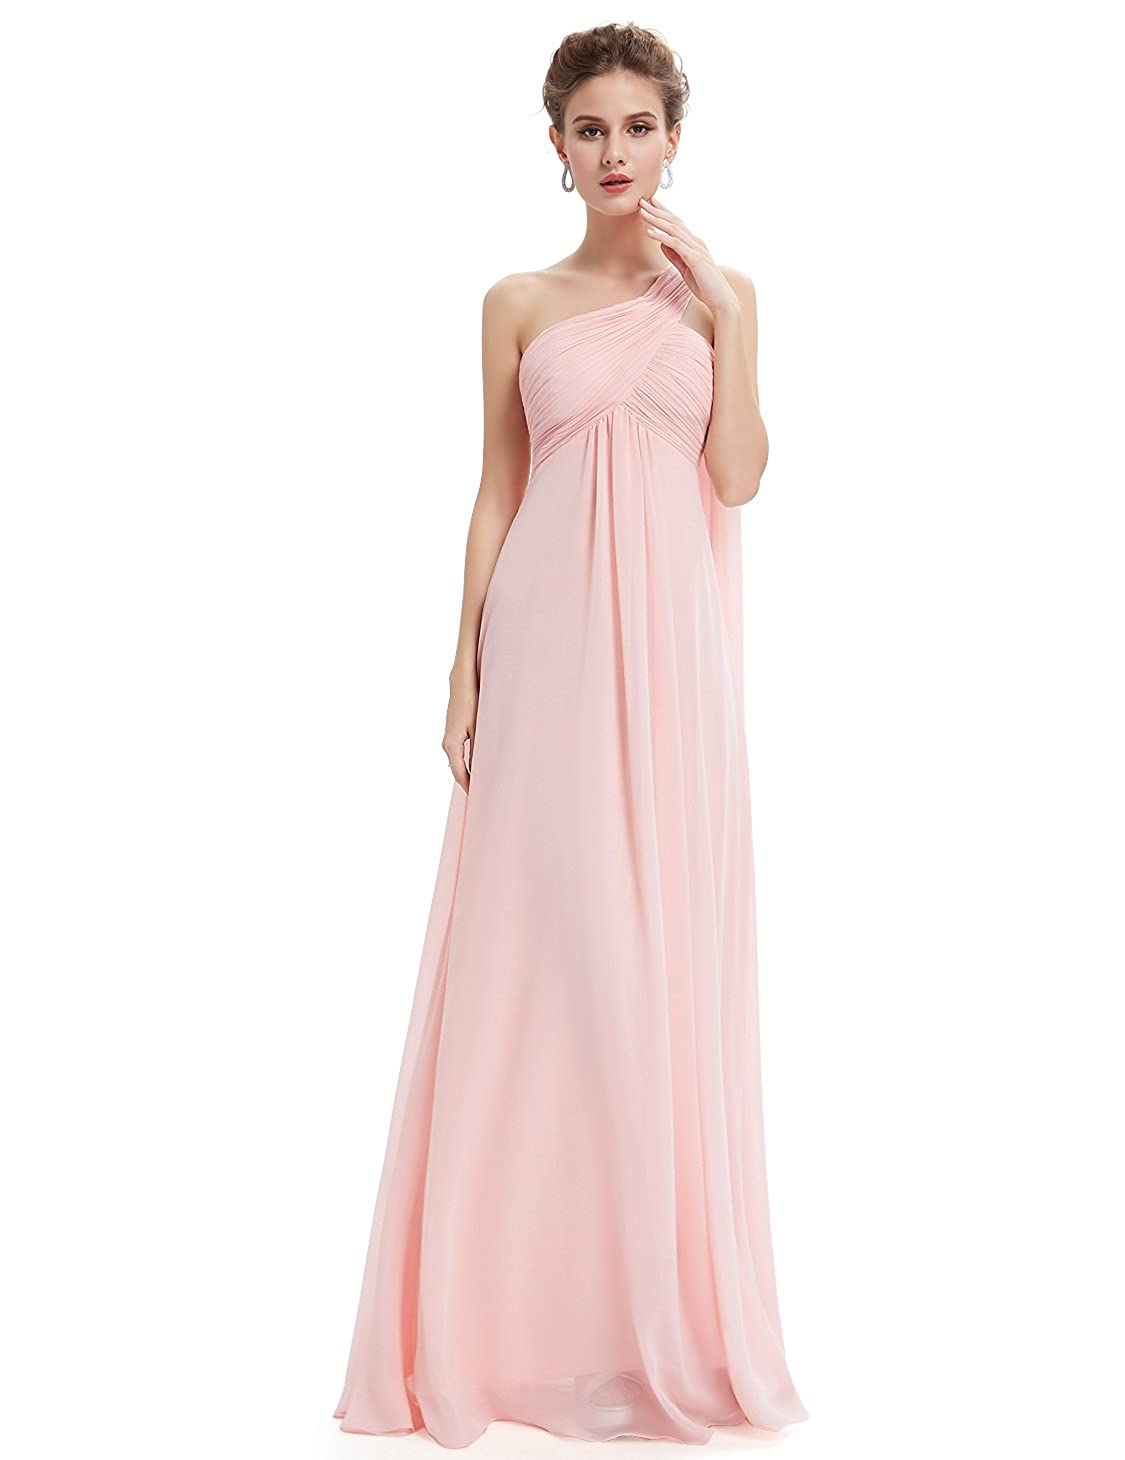 Vintage Evening Dresses and Formal Evening Gowns Ever Pretty Womens One-Shoulder Evening Gown $56.99 AT vintagedancer.com